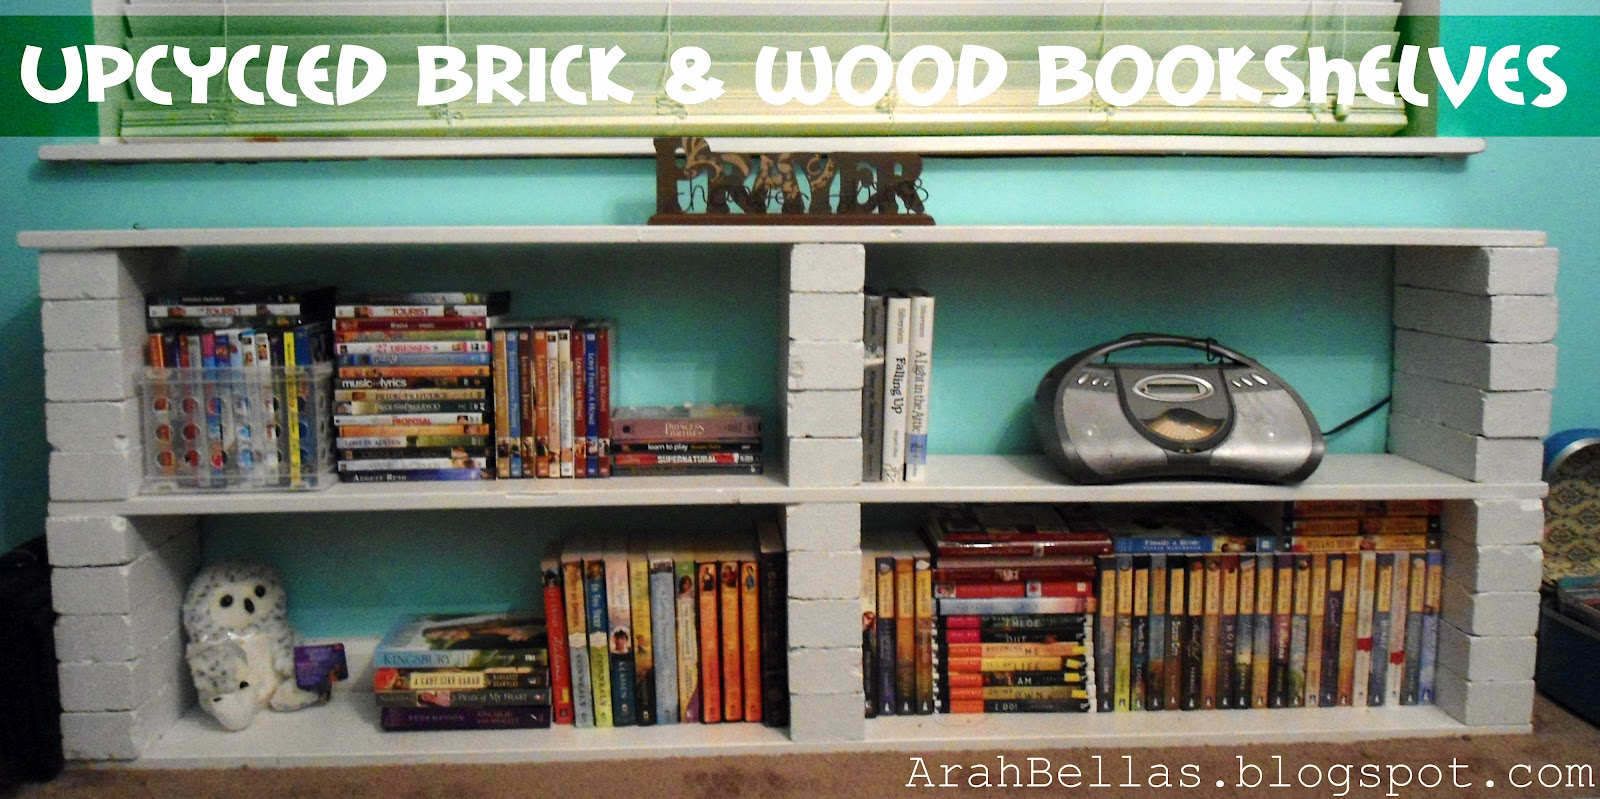 Bricks and Boards Bookshelves 1600 x 799